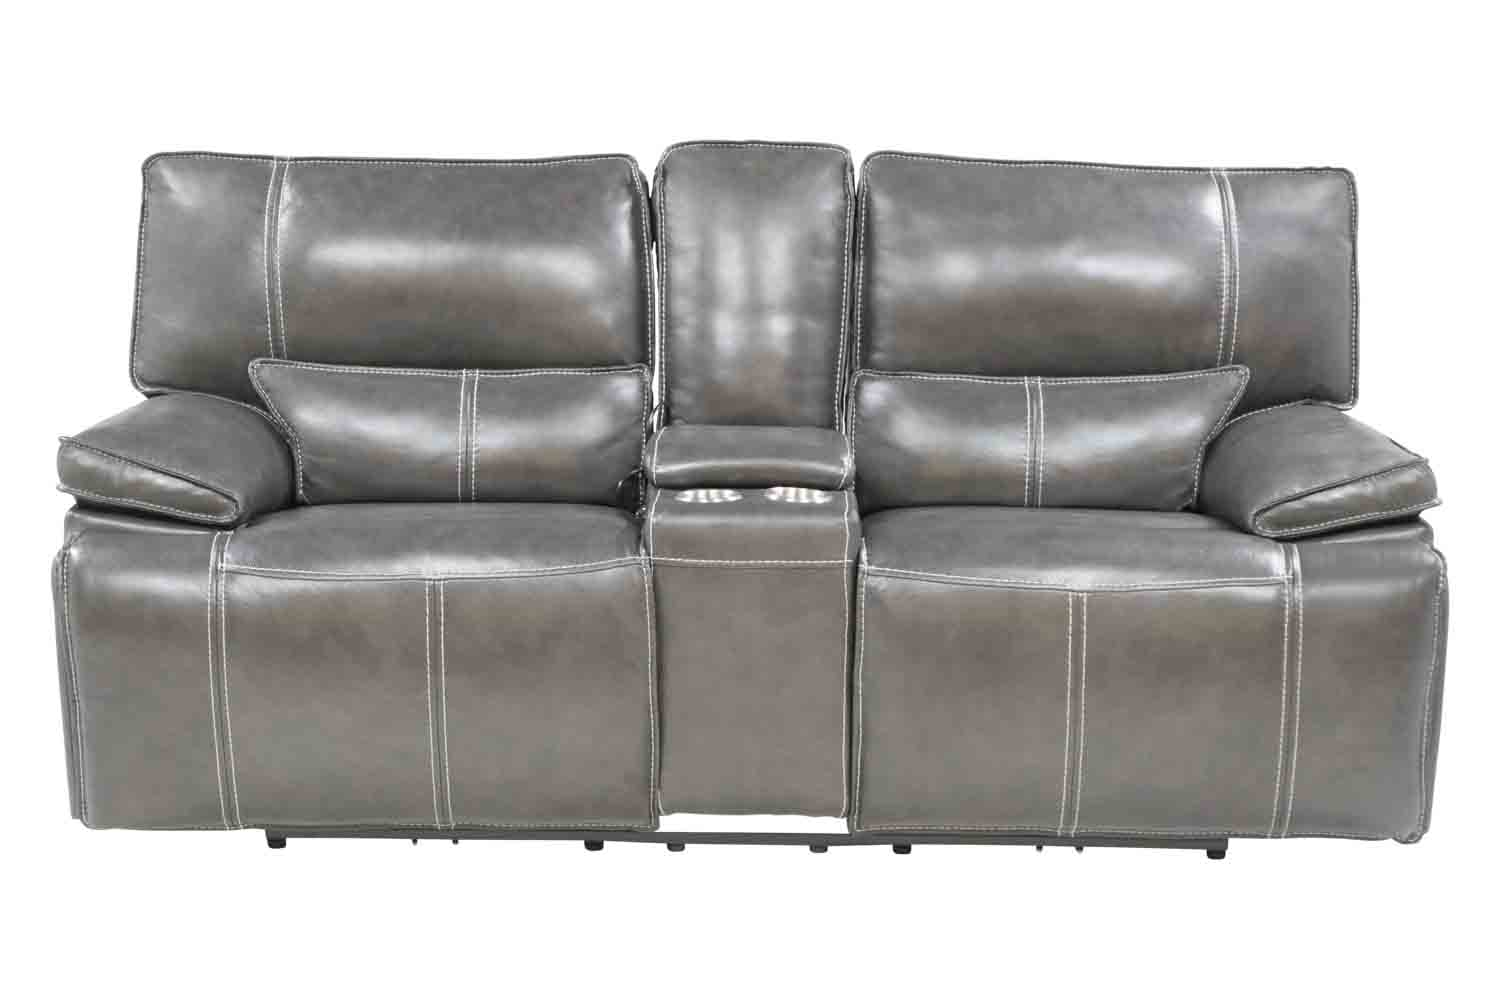 sofa repair sikanderpur gurgaon a rudin for sale mor leather taraba home review